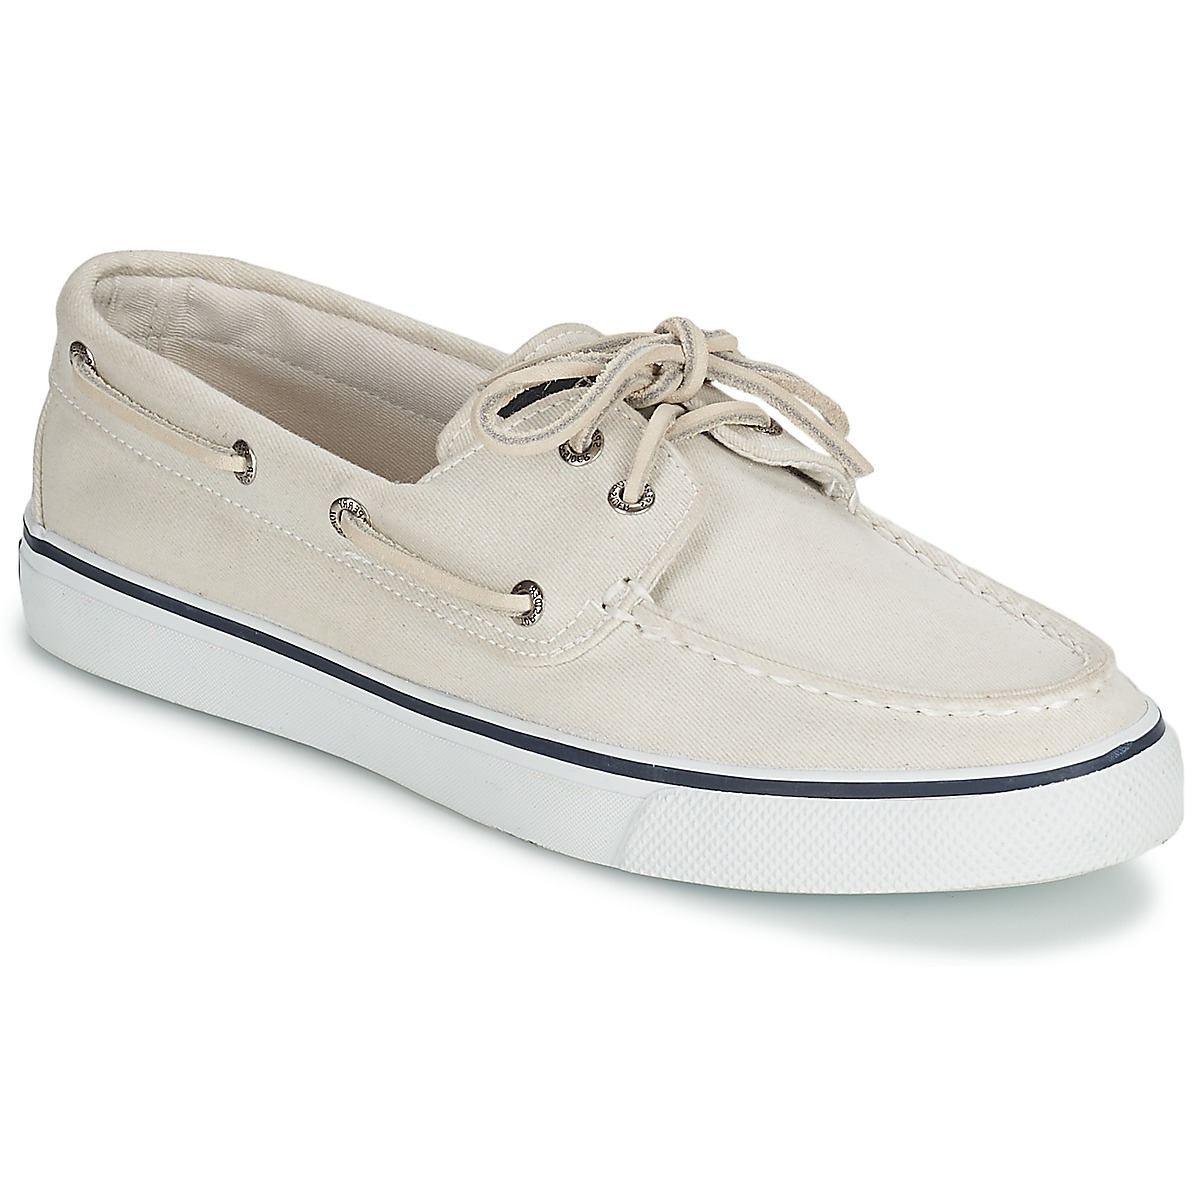 Sperry Top-Sider BAHAMA White